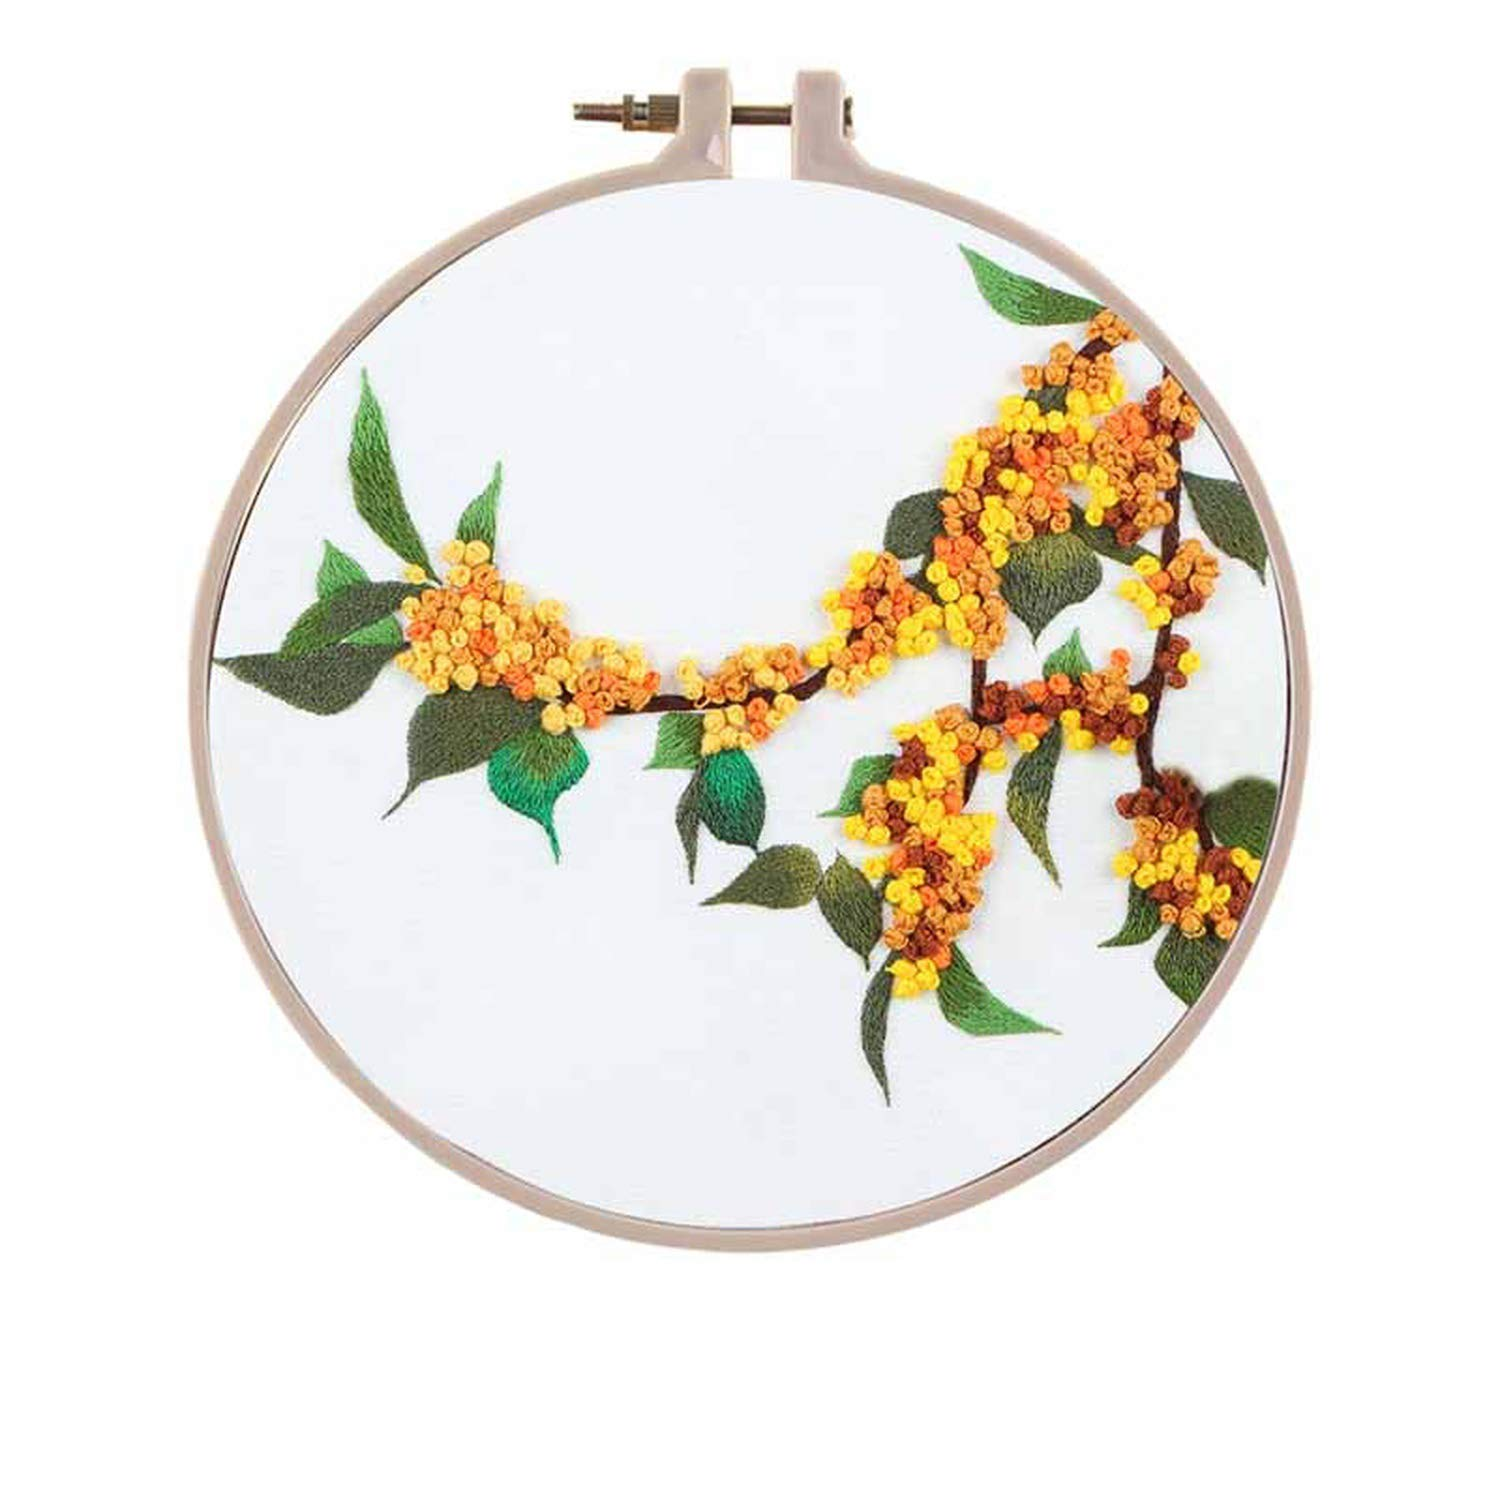 Handmade Chinese Flower Embroidery Kit with Hoop Needlework Cross Stitch Swing Meet Sets Art Handcraft Painting Wall Decor,6,Plastic Hoop by koweis